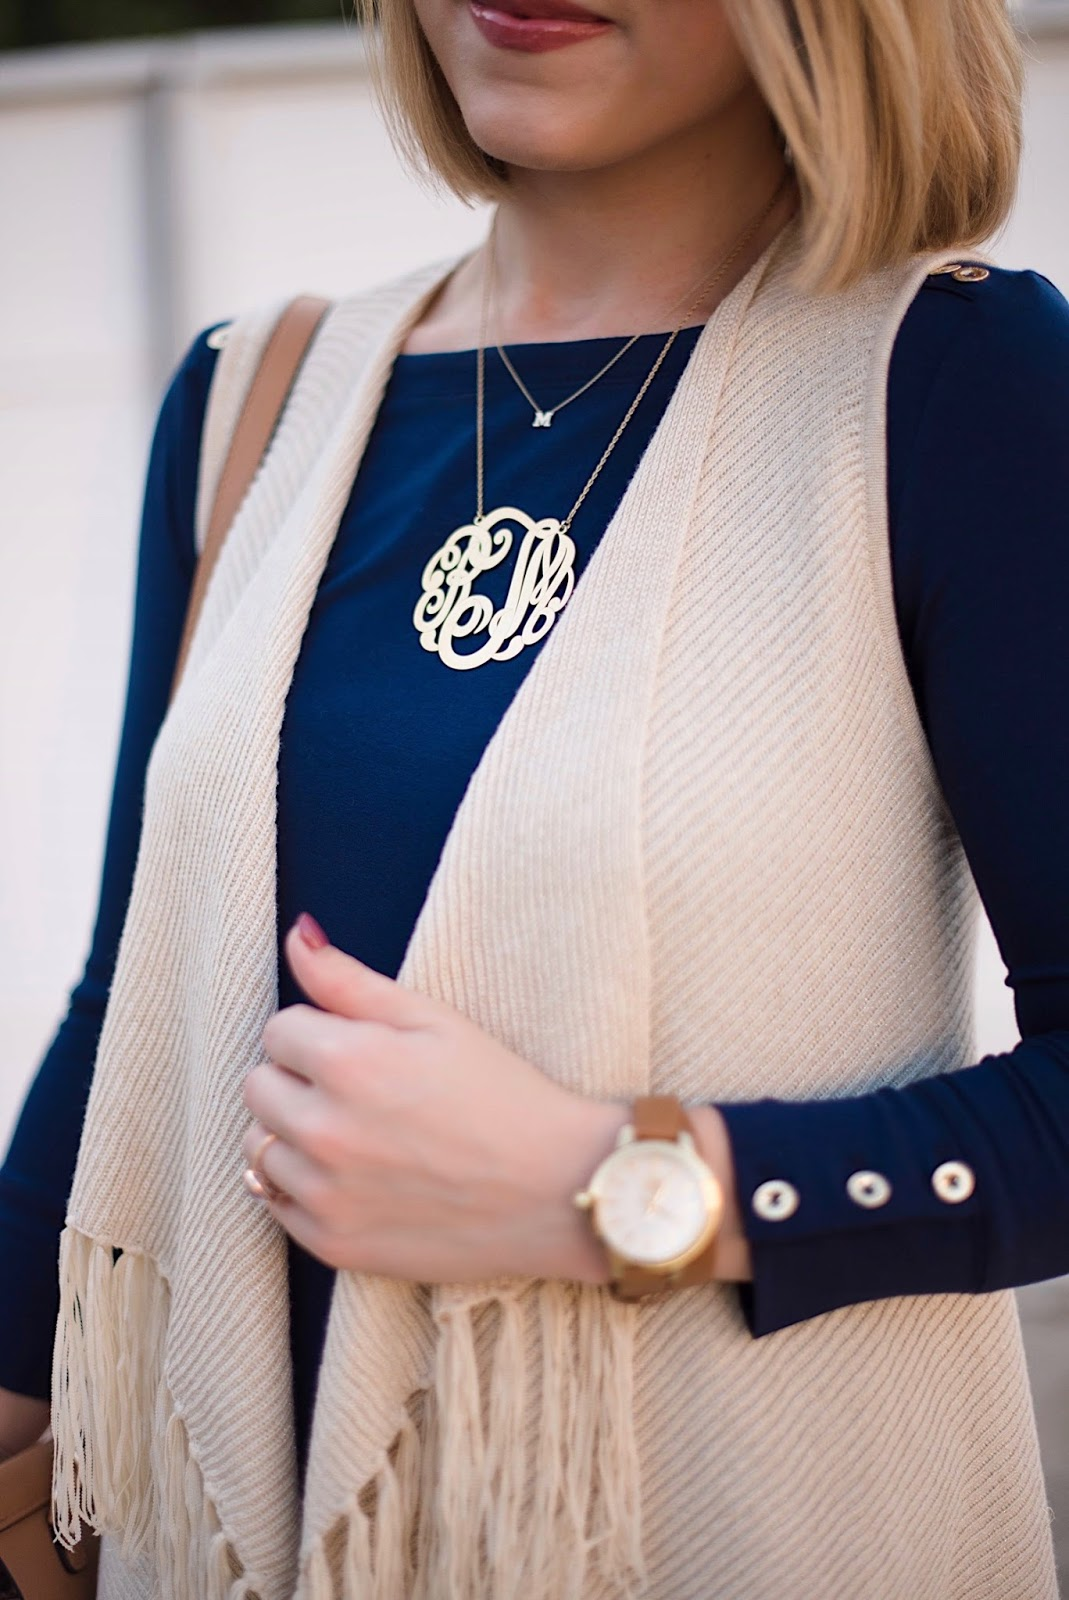 Extra Large Monogram Necklace - Rachel Timmerman of Something Delightful Blog